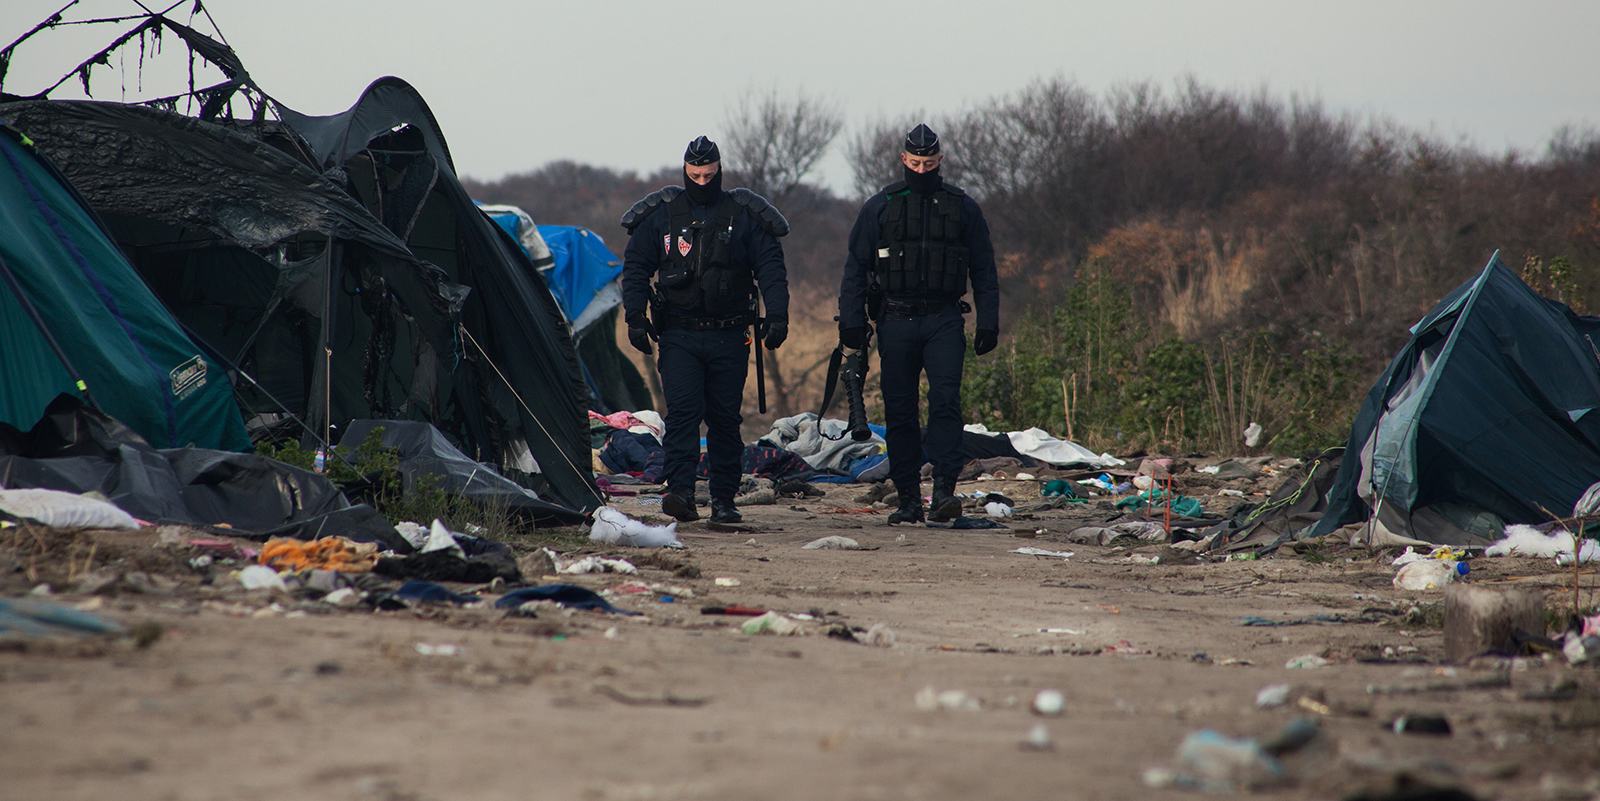 violences jungle calais migrants asti faverges. Black Bedroom Furniture Sets. Home Design Ideas